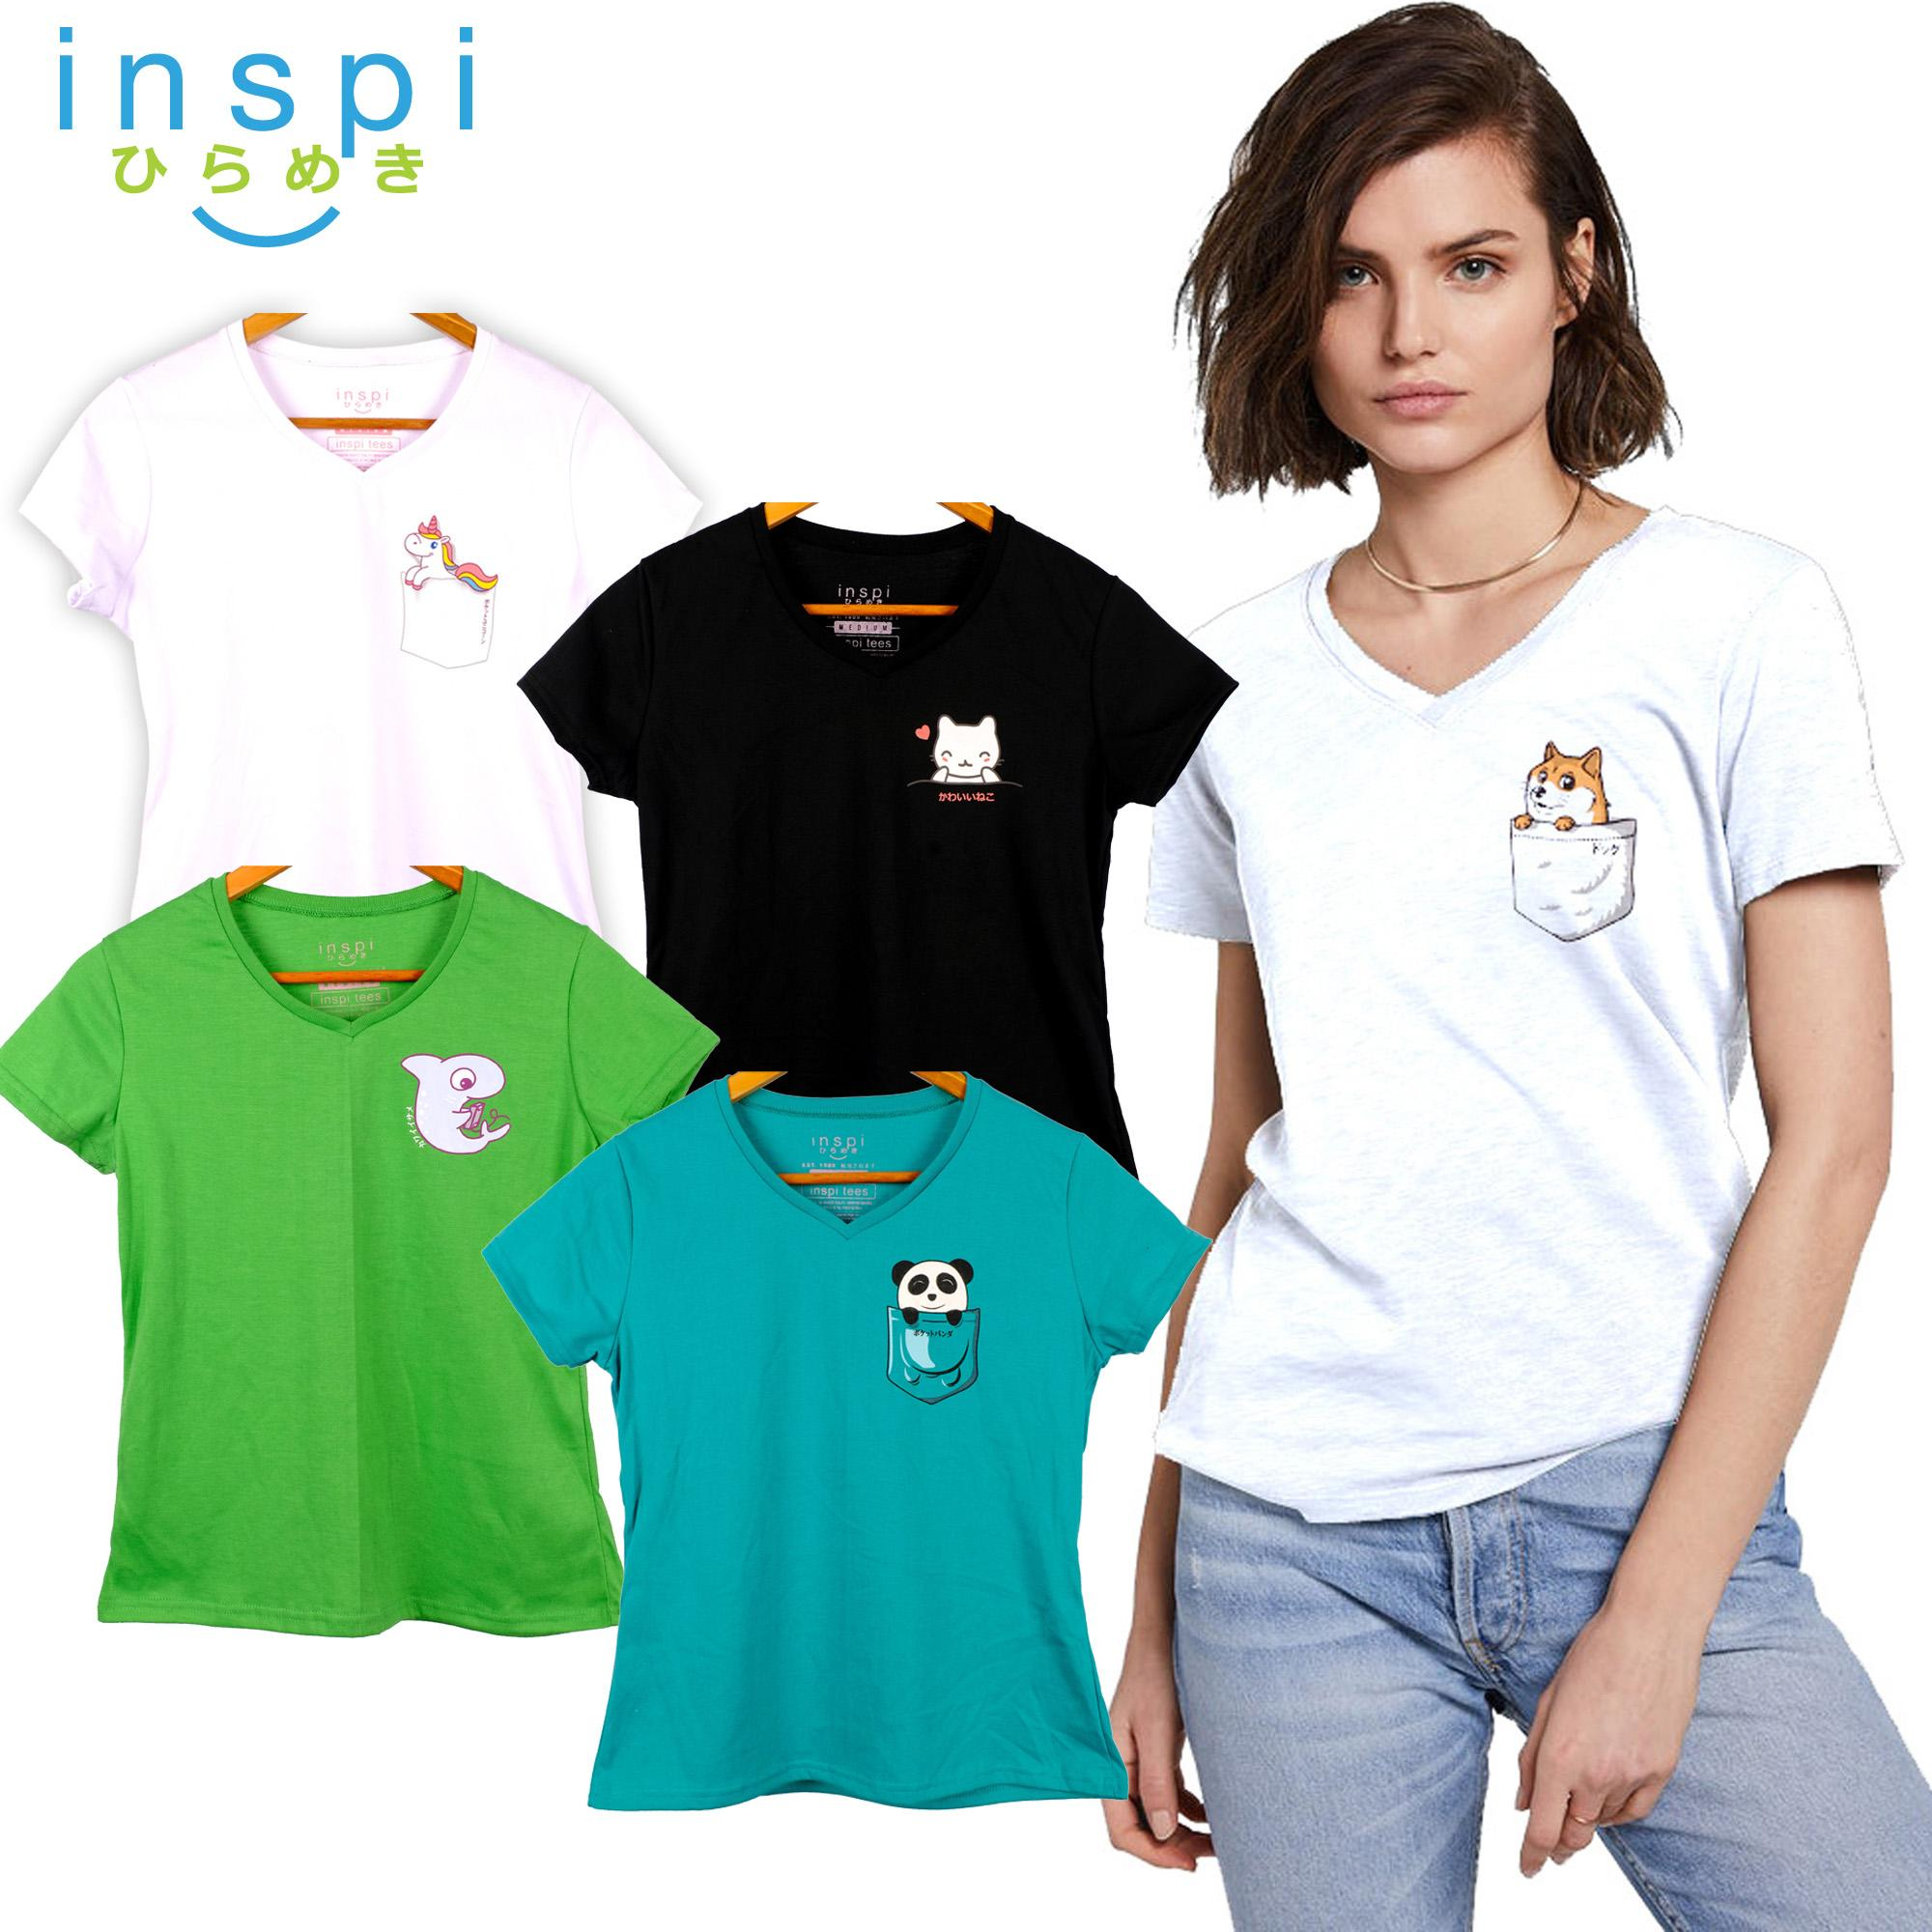 443ebe379 INSPI Tees Ladies Semi Fit Pocket Friends Collection tshirt printed graphic  tee t shirt shirts tshirts